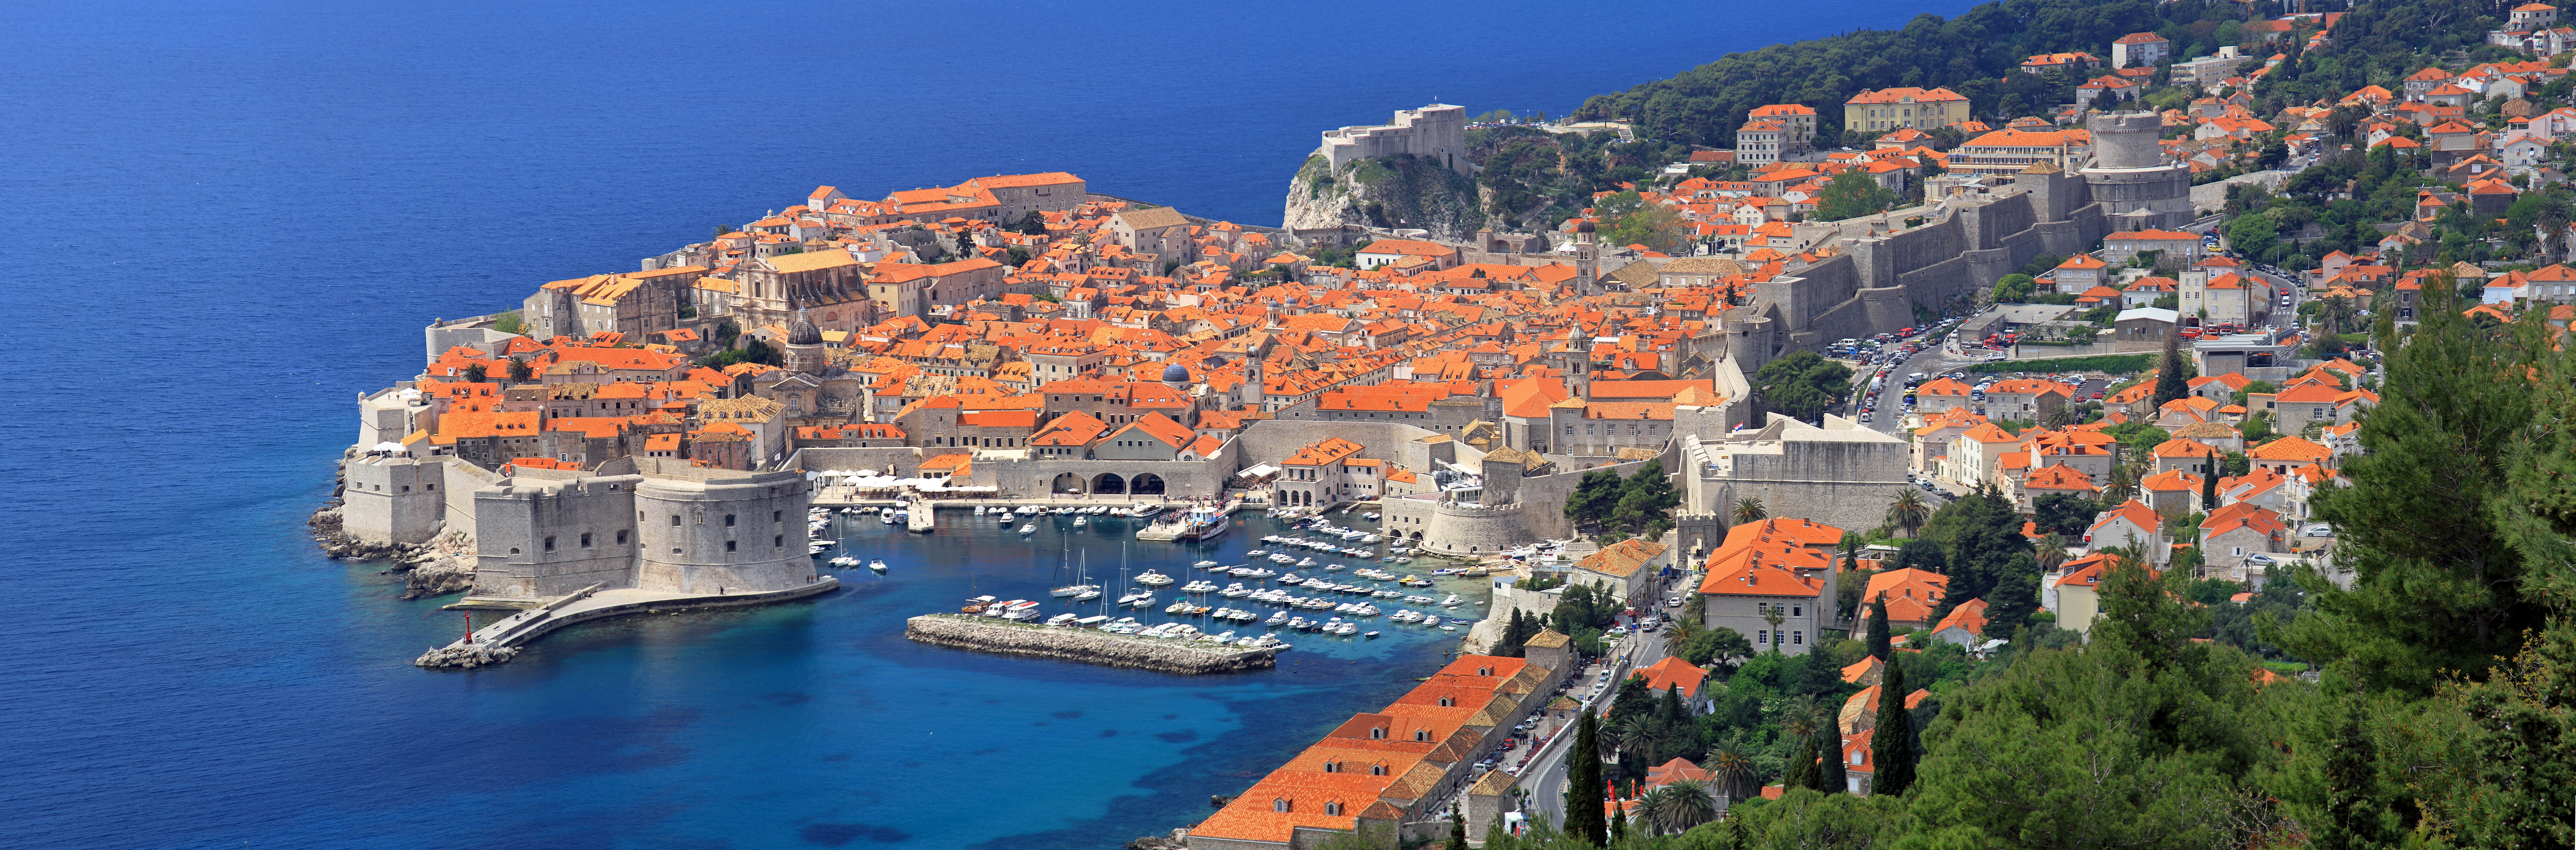 Mediterranean Cruise Excursion –  Dubrovnik